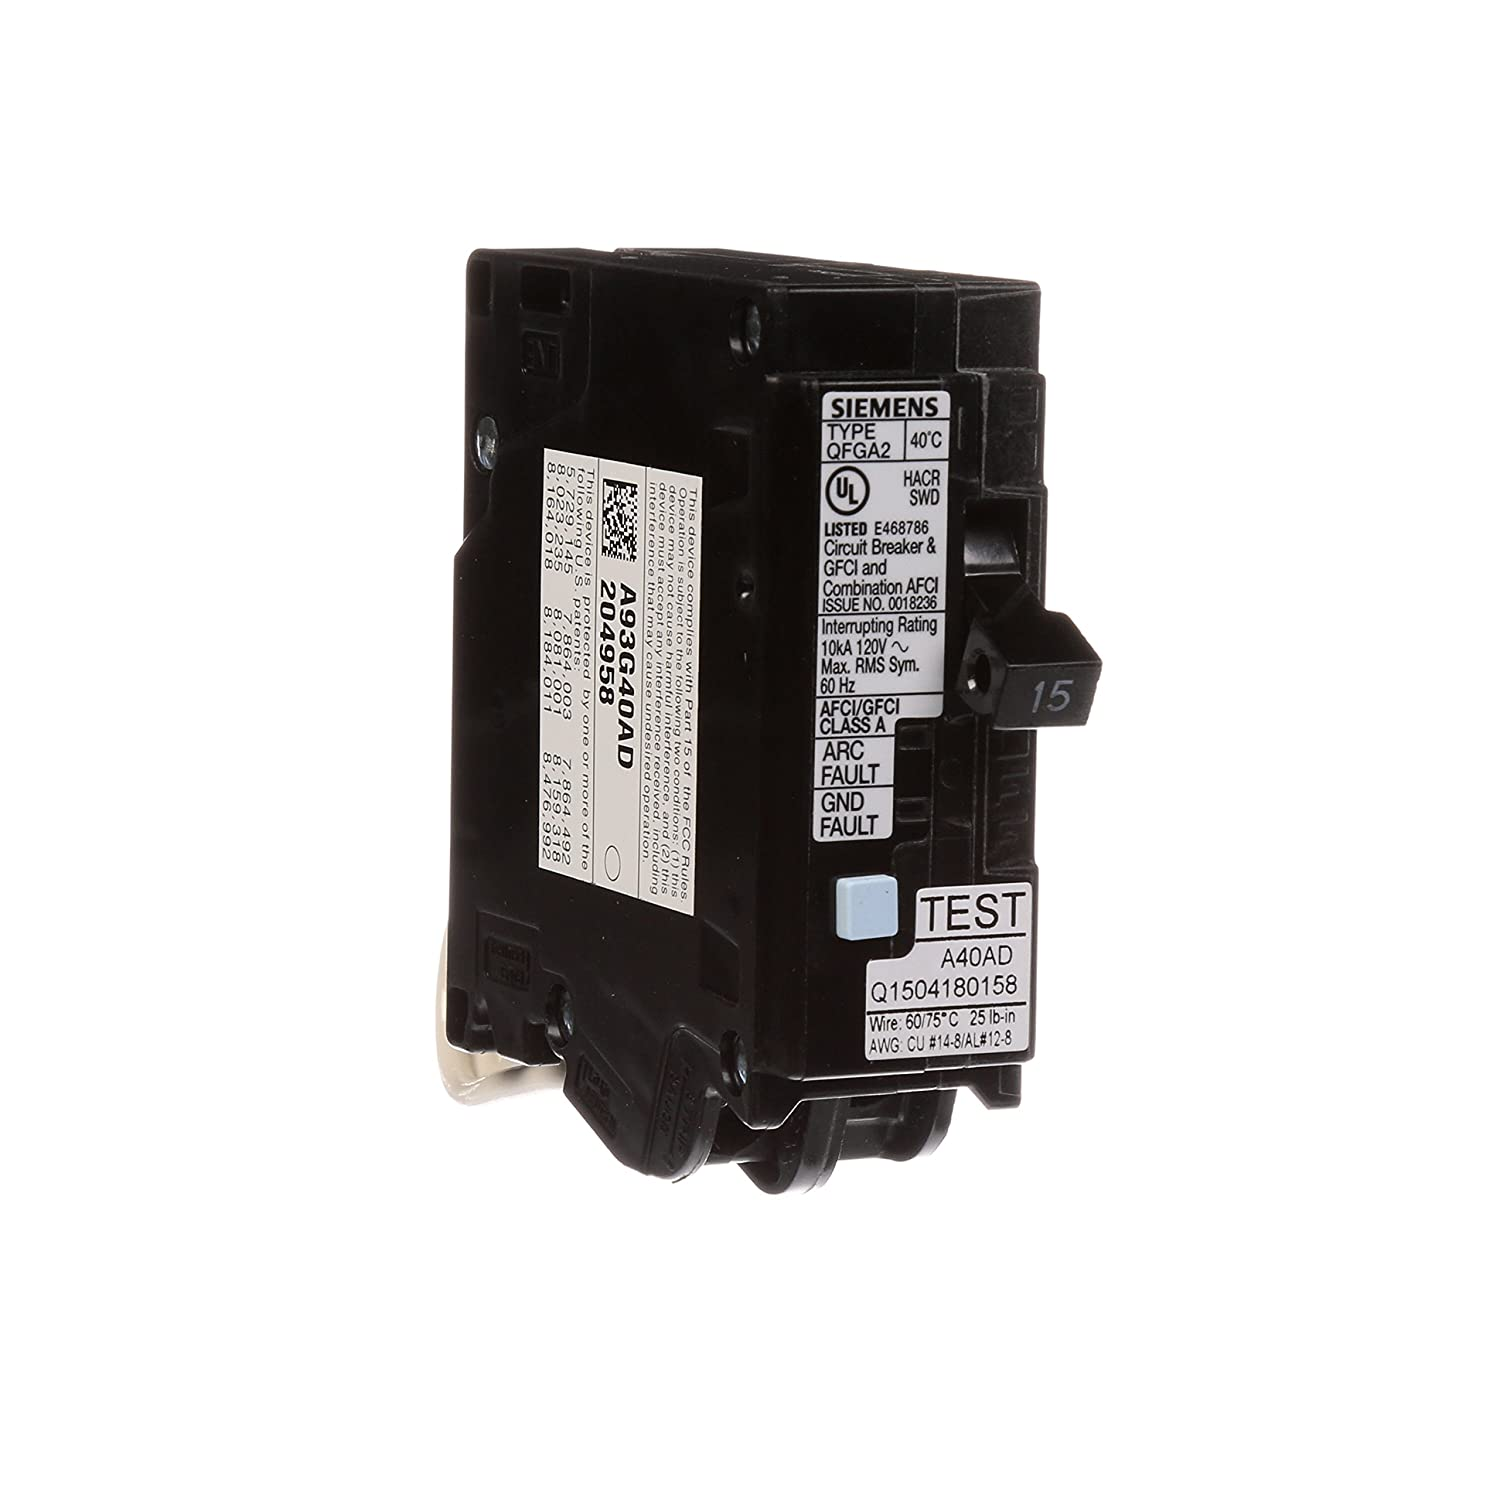 Siemens Q115df 15 Amp Afci Gfci Dual Function Circuit Breaker Plug Light Switch Home Wiring Diagram On Load Center Style